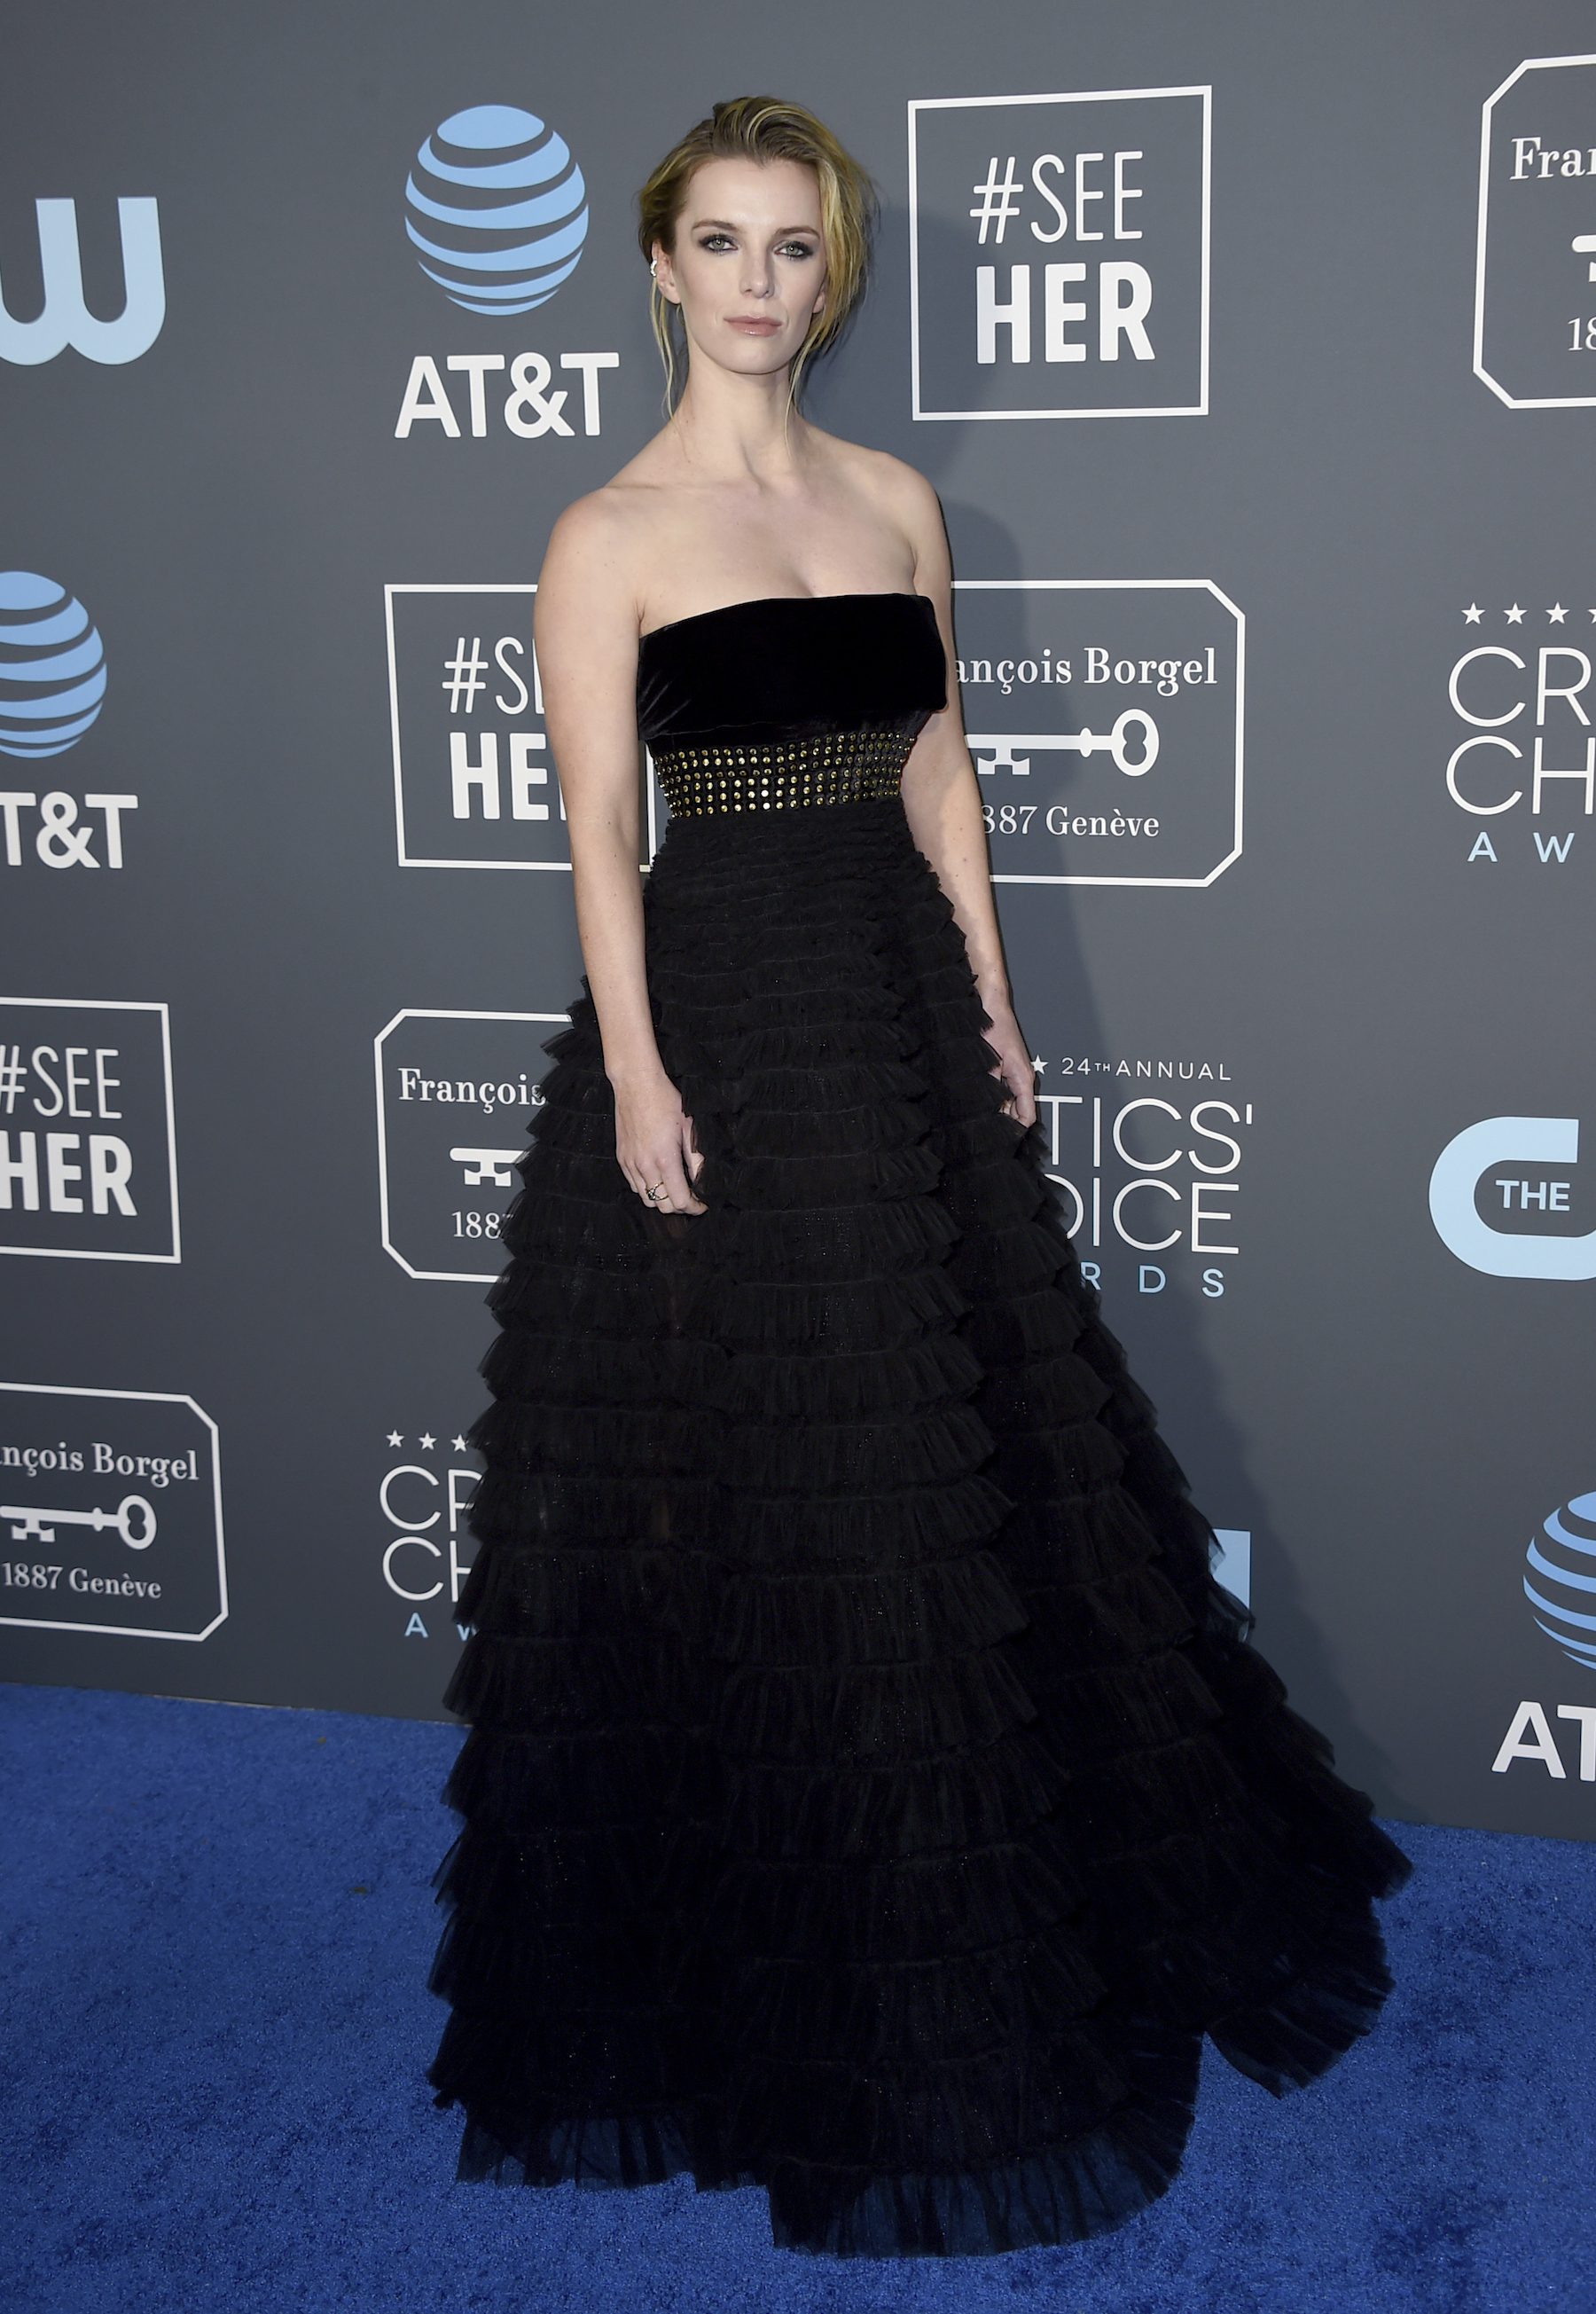 <div class='meta'><div class='origin-logo' data-origin='AP'></div><span class='caption-text' data-credit='Jordan Strauss/Invision/AP'>Betty Gilpin arrives at the 24th annual Critics' Choice Awards on Sunday, Jan. 13, 2019, at the Barker Hangar in Santa Monica, Calif.</span></div>